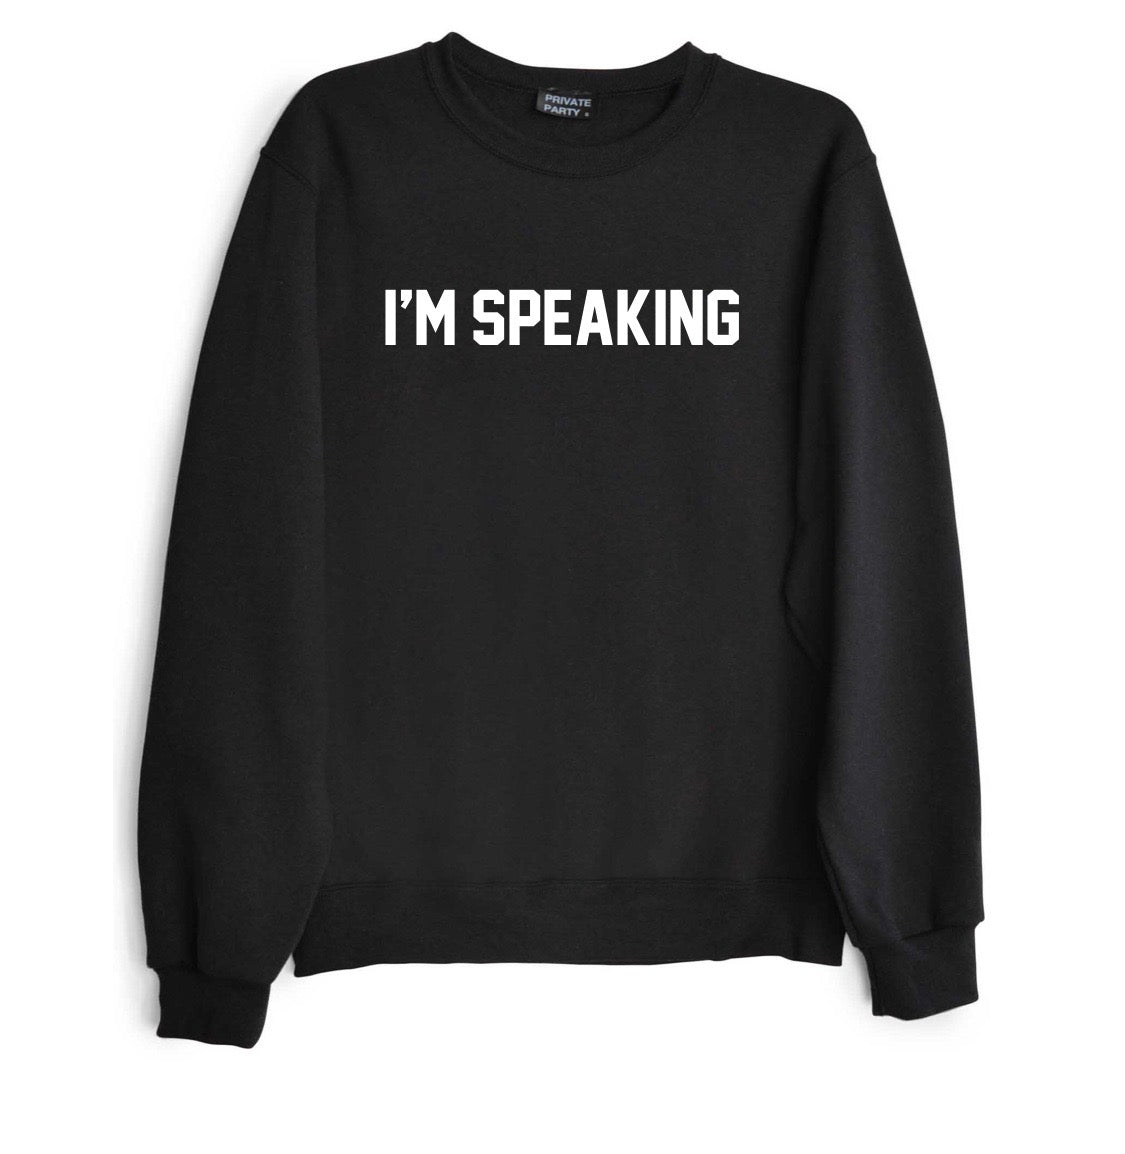 I'M SPEAKING [UNISEX CREWNECK SWEATSHIRT]